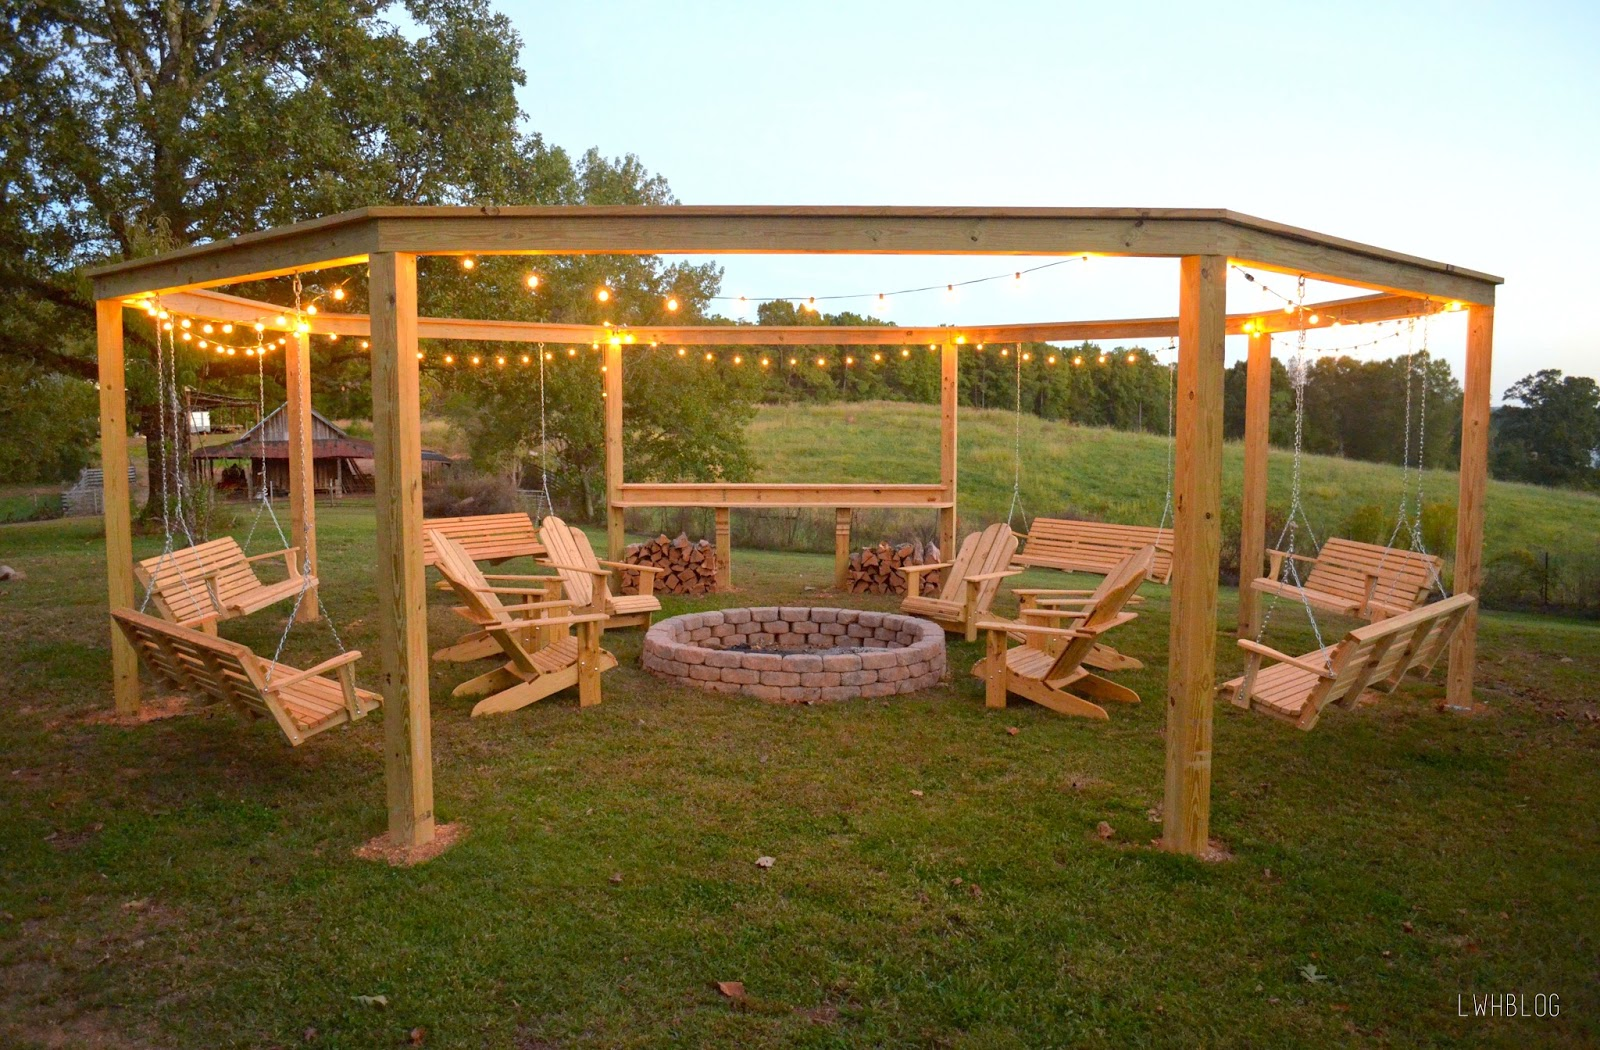 Remodelaholic tutorial build an amazing diy pergola and for Building a wooden swing